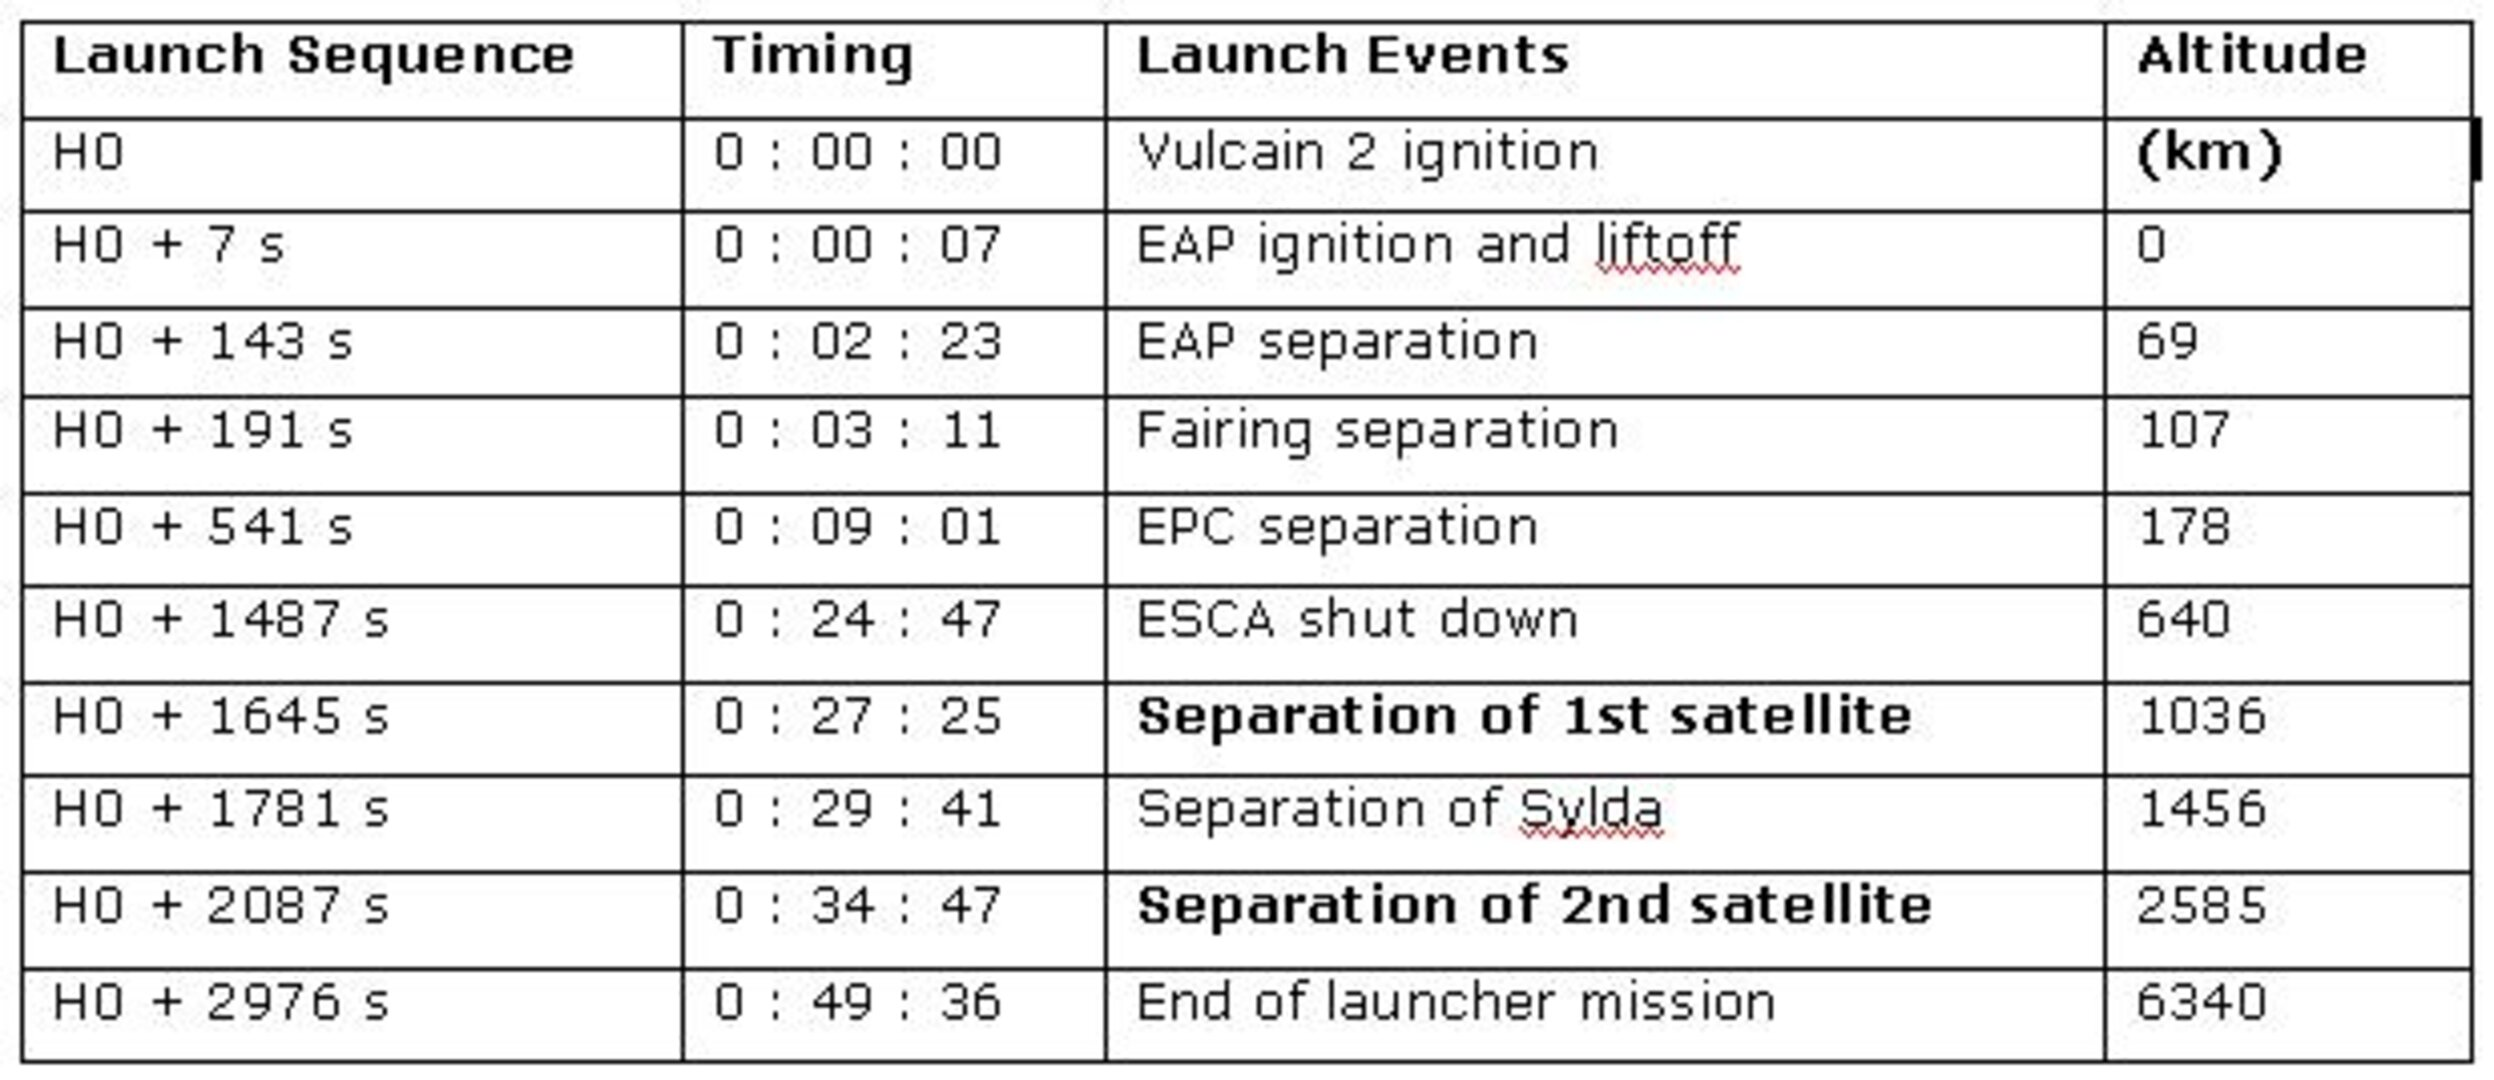 Typical Ariane 5 ECA launch sequence (GTO mission)